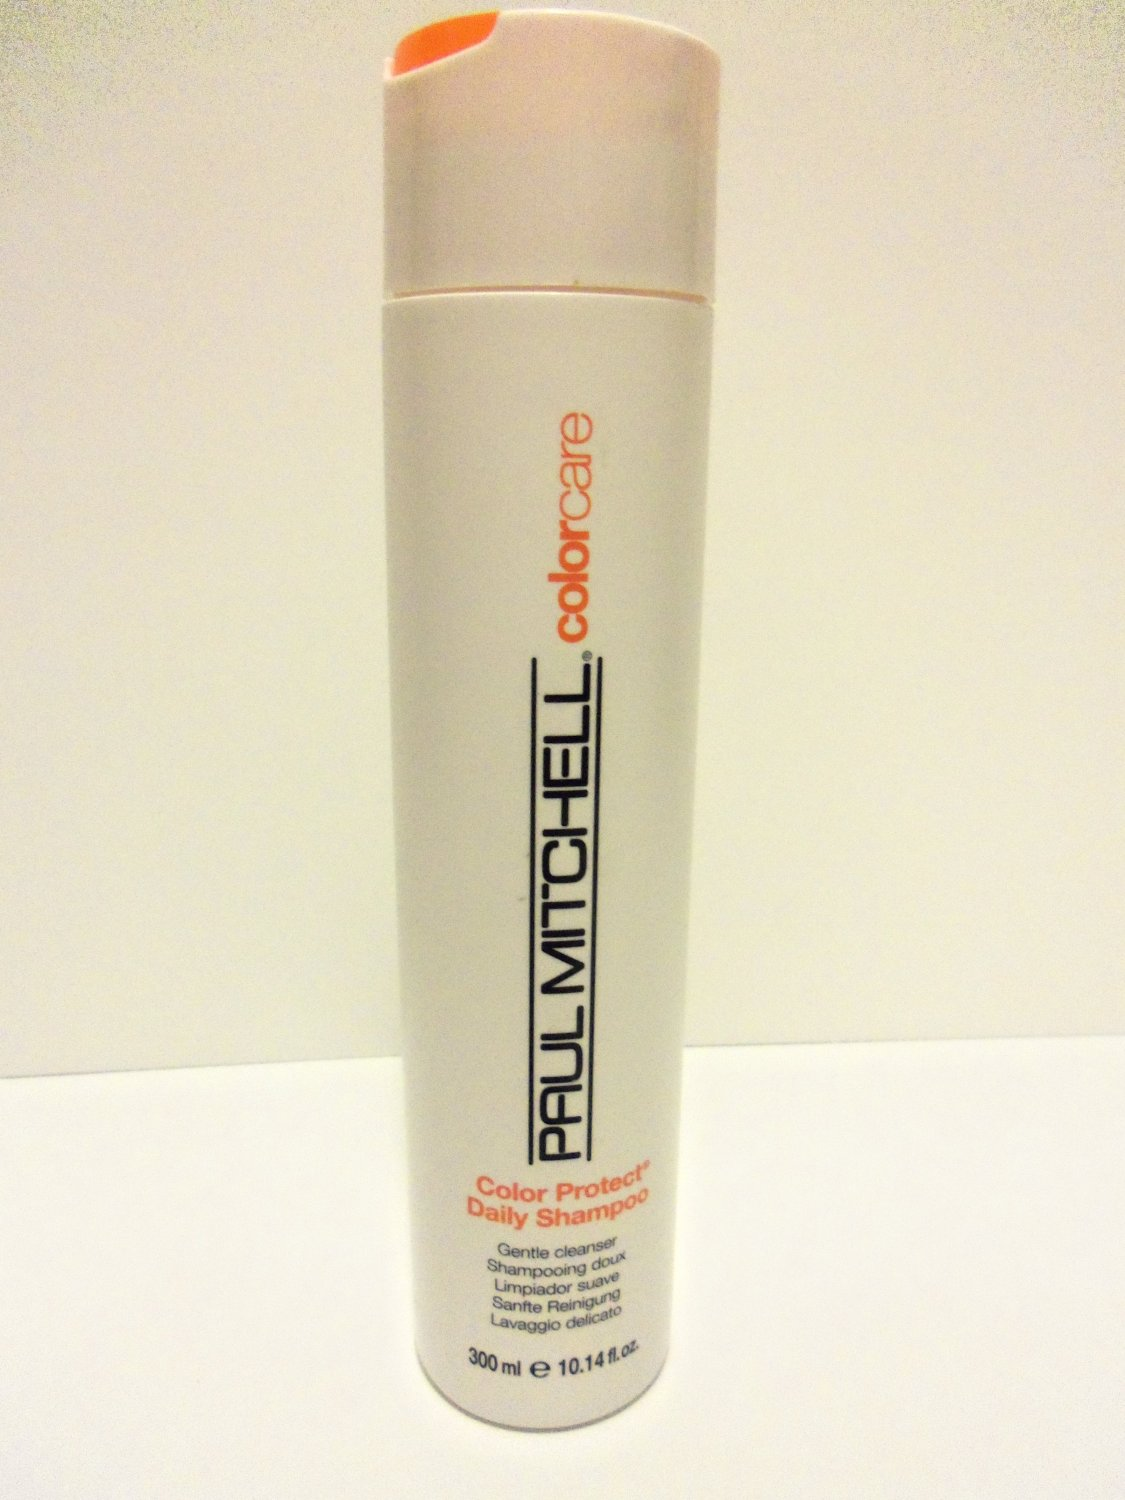 Paul Mitchell Colorcare Color Protect Daily Shampoo 10.14